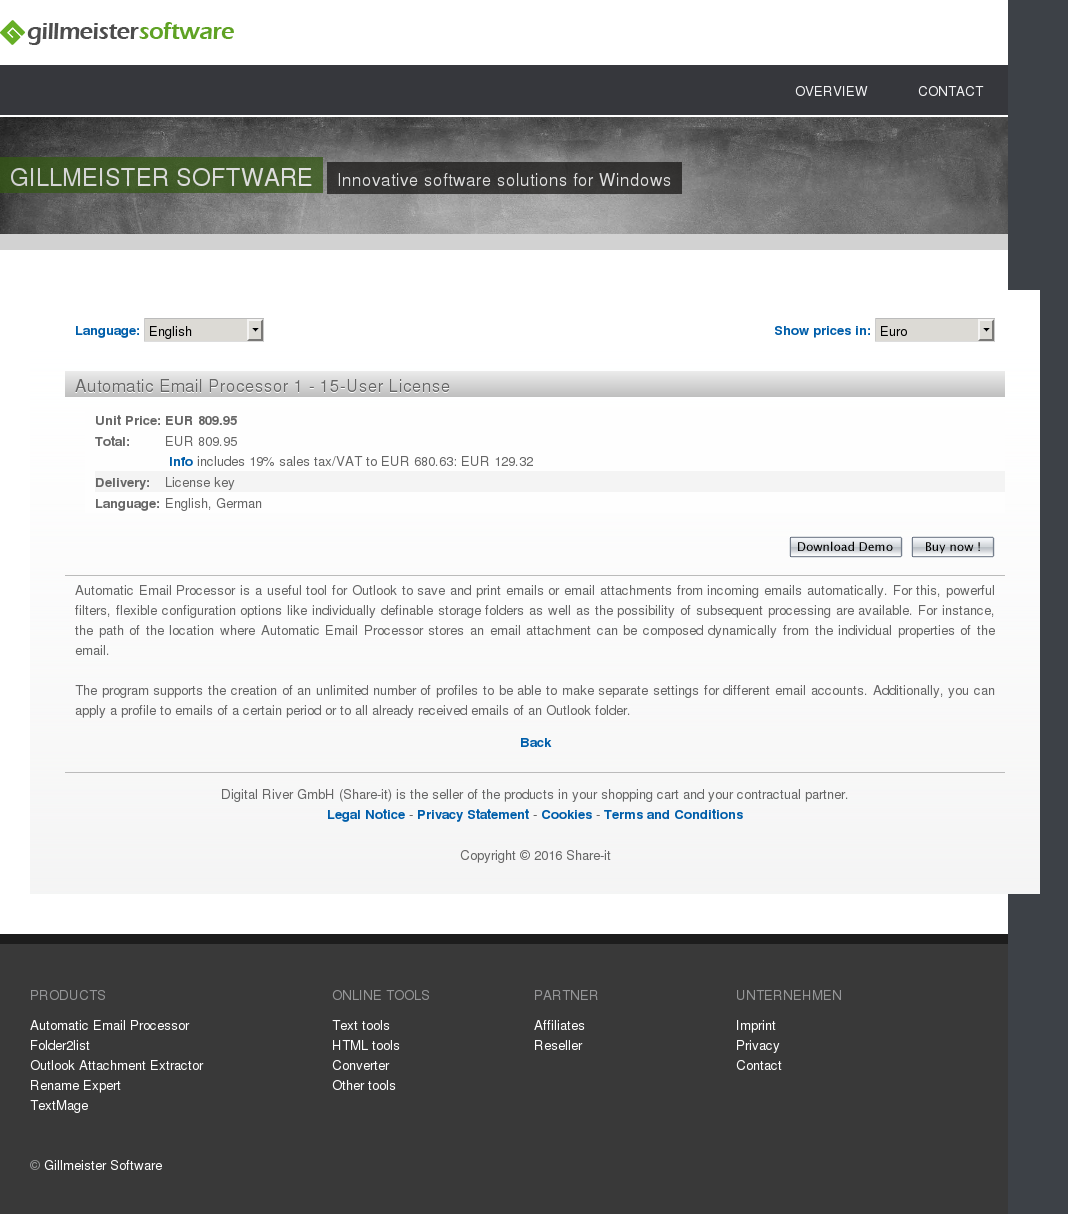 Automatic Email Processor 1 - 15-User License